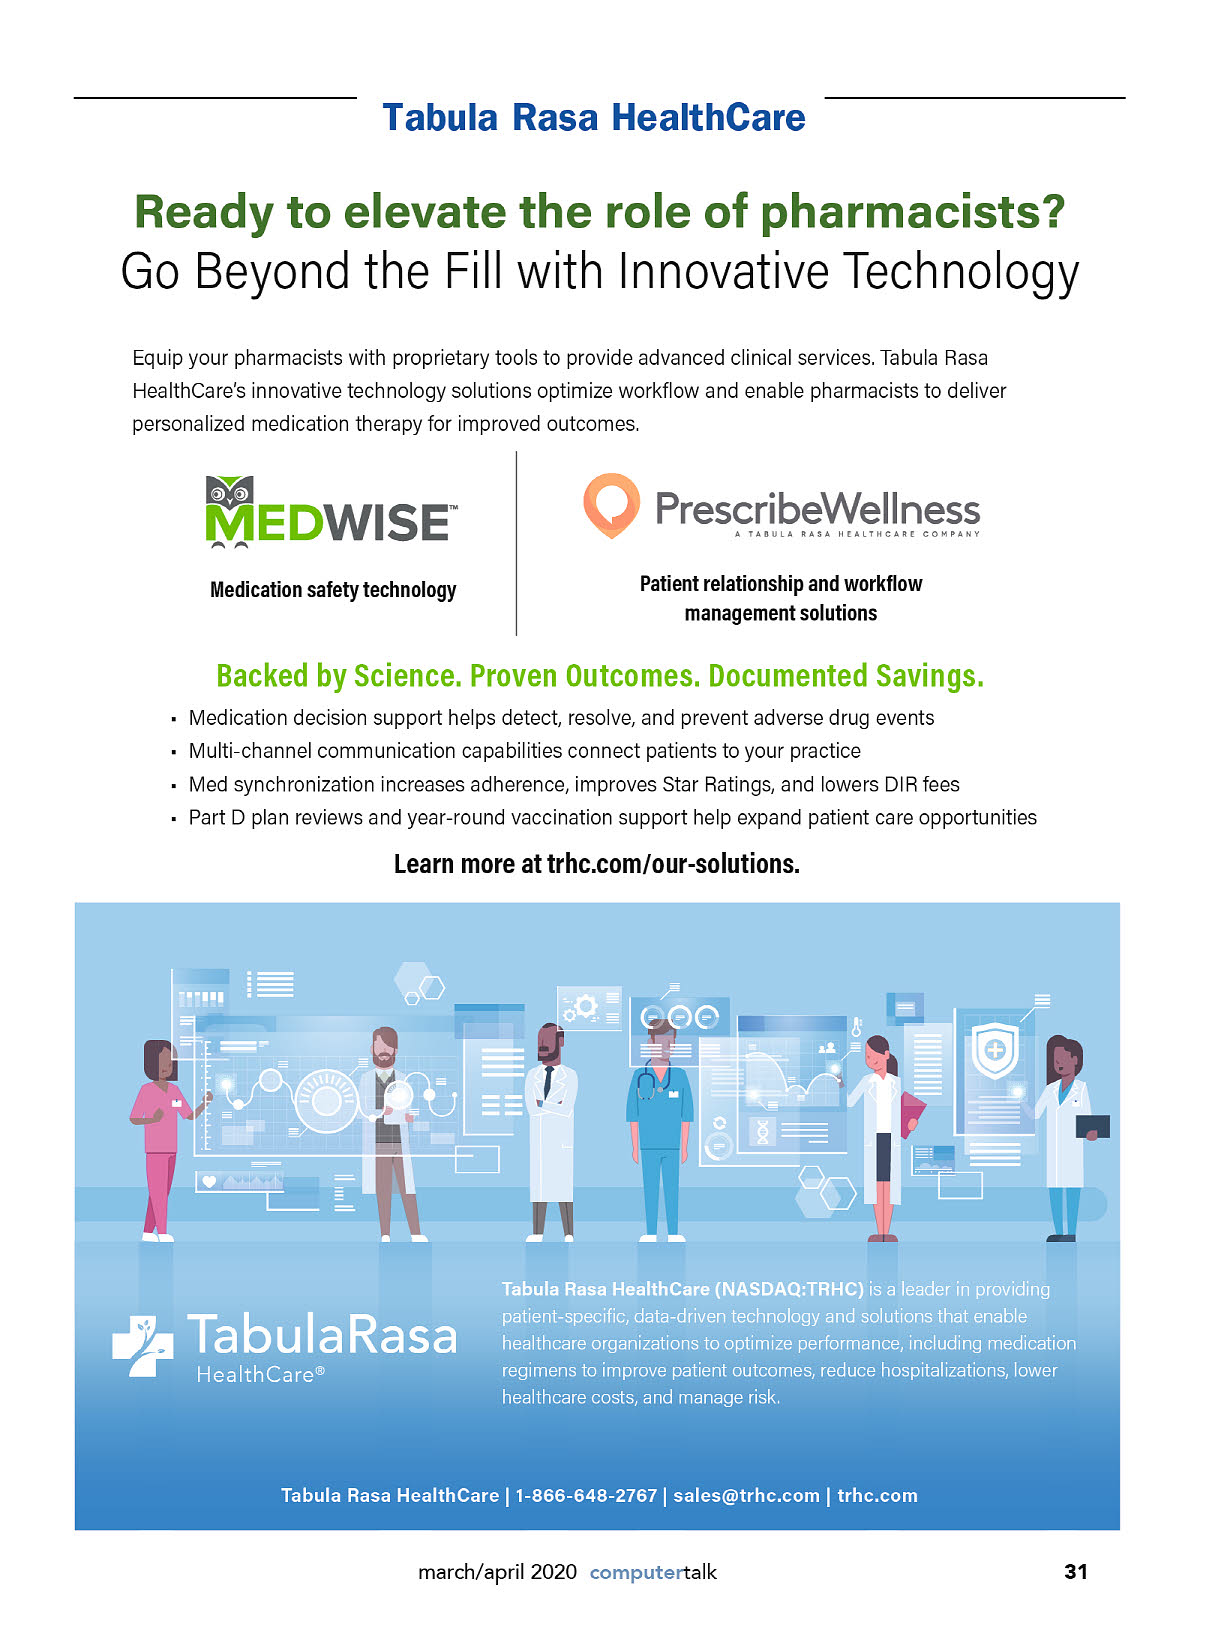 CT Buyers Guide 2020 TRHC Tabula Rasa HealthCare